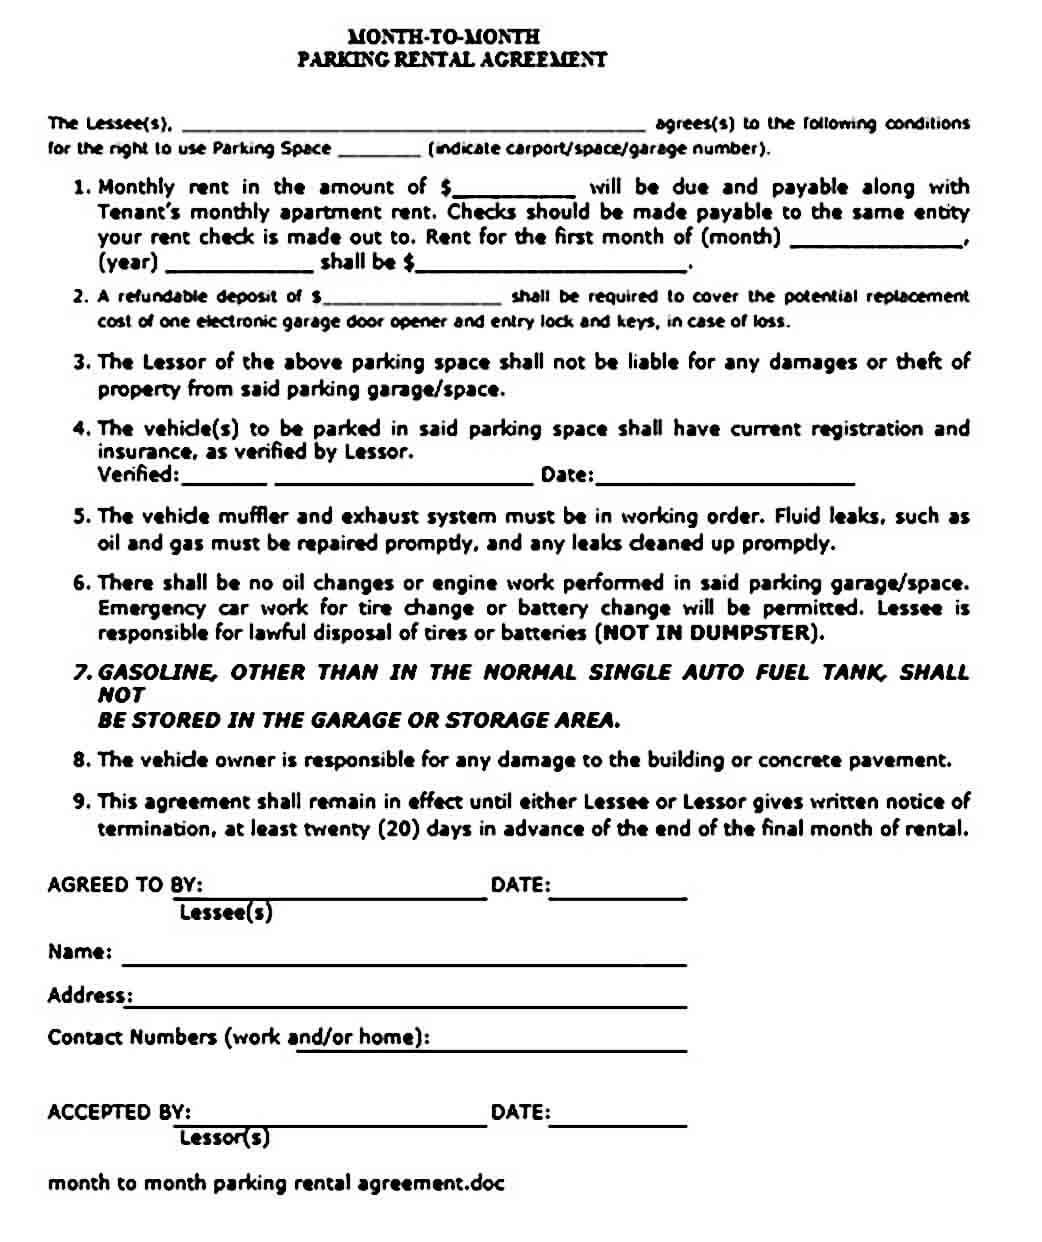 Parking Rental Agreement